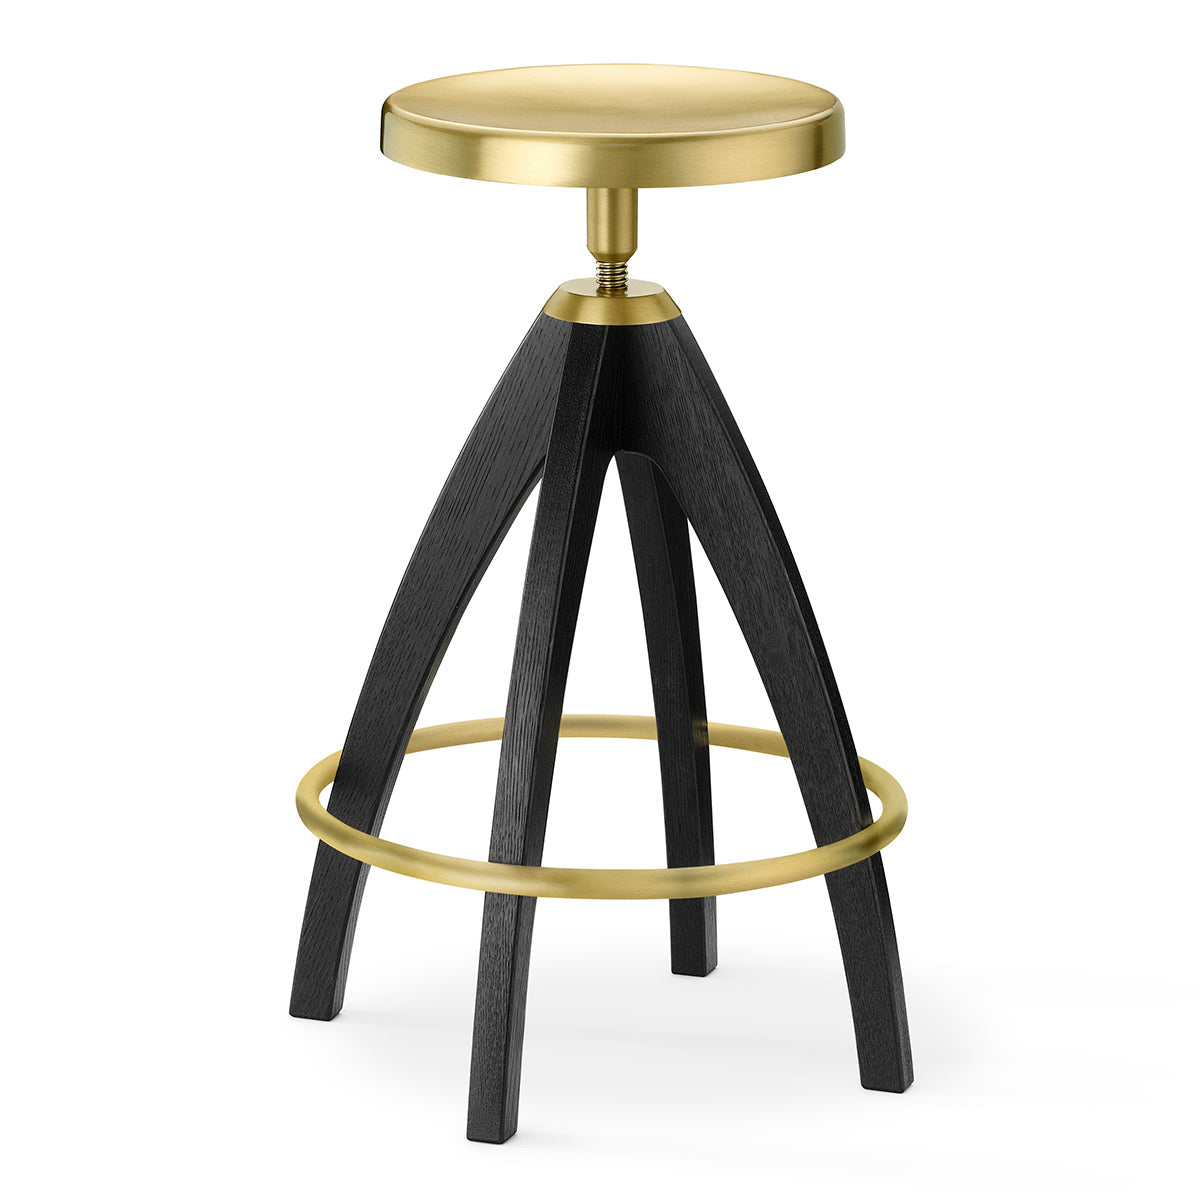 Leporello Senior Stool